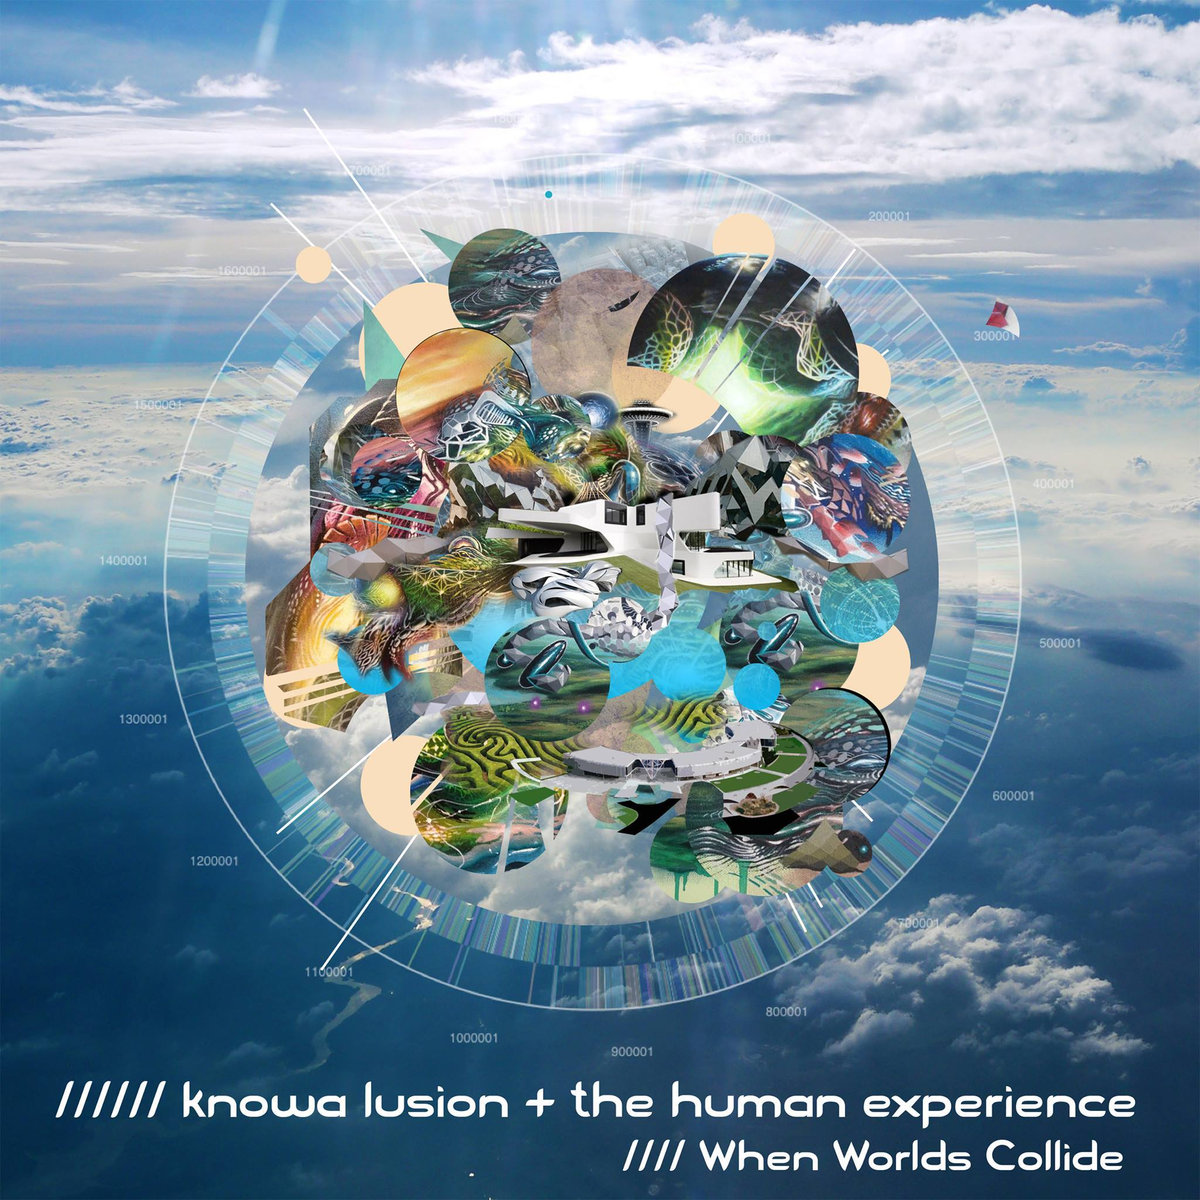 Knowa Lusion and The Human Experience - When Worlds Collide @ 'When Worlds Collide' album (bass, downtempo)